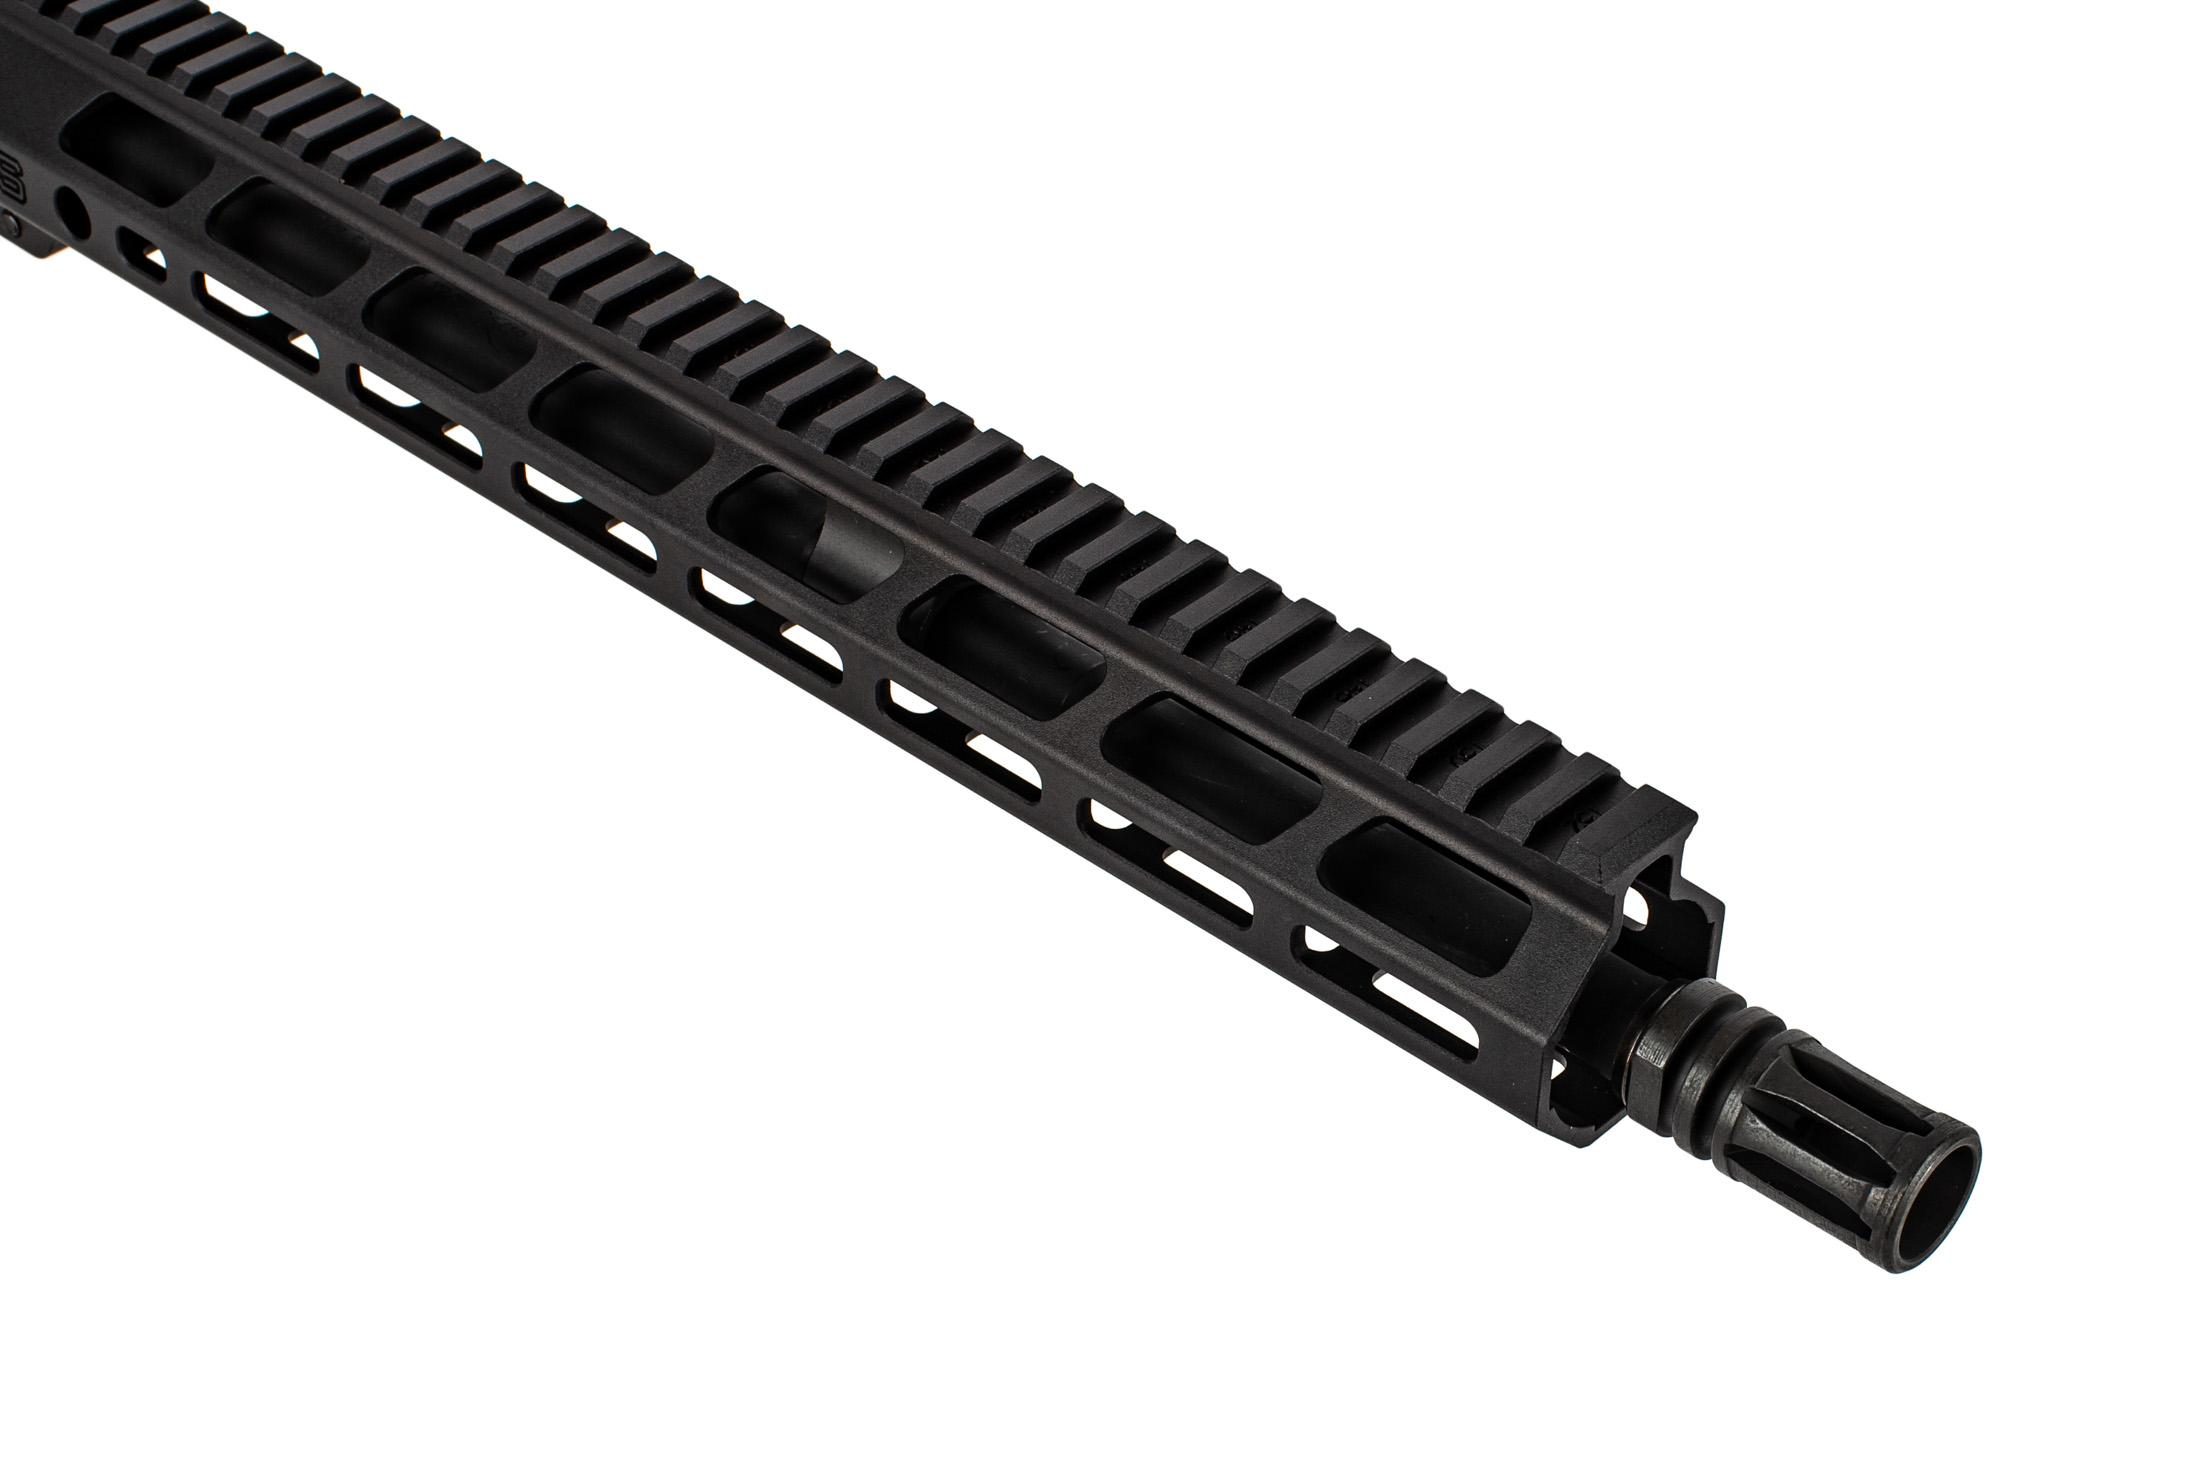 Sionics Patrol 3 lightweight ar15 barreled upper receiver is chambered in 5.56 nato